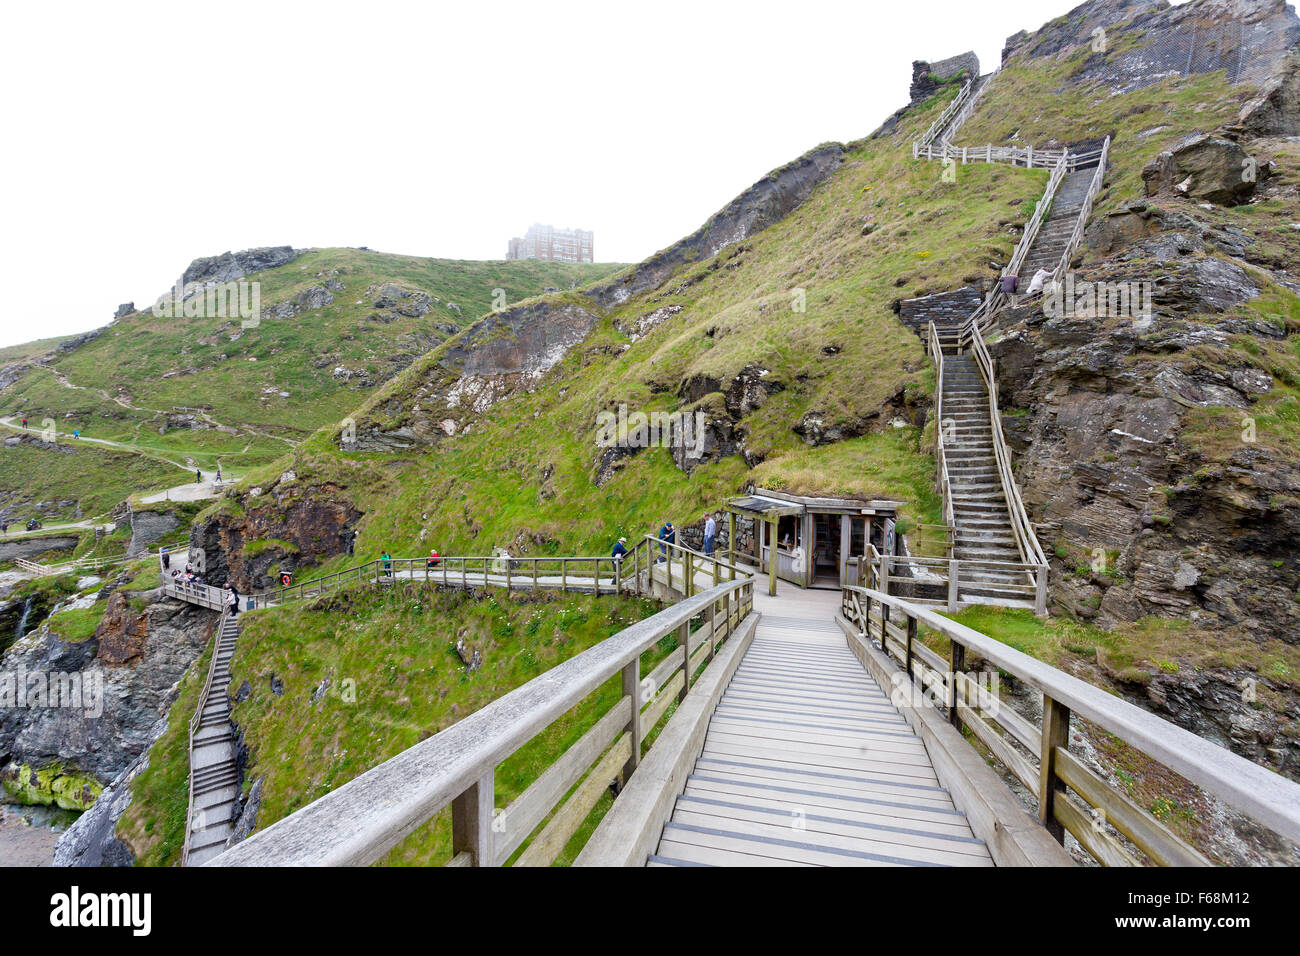 sea-mist-and-steps-the-bridge-to-the-island-with-tintagel-castle-ruins-F68M12.jpg